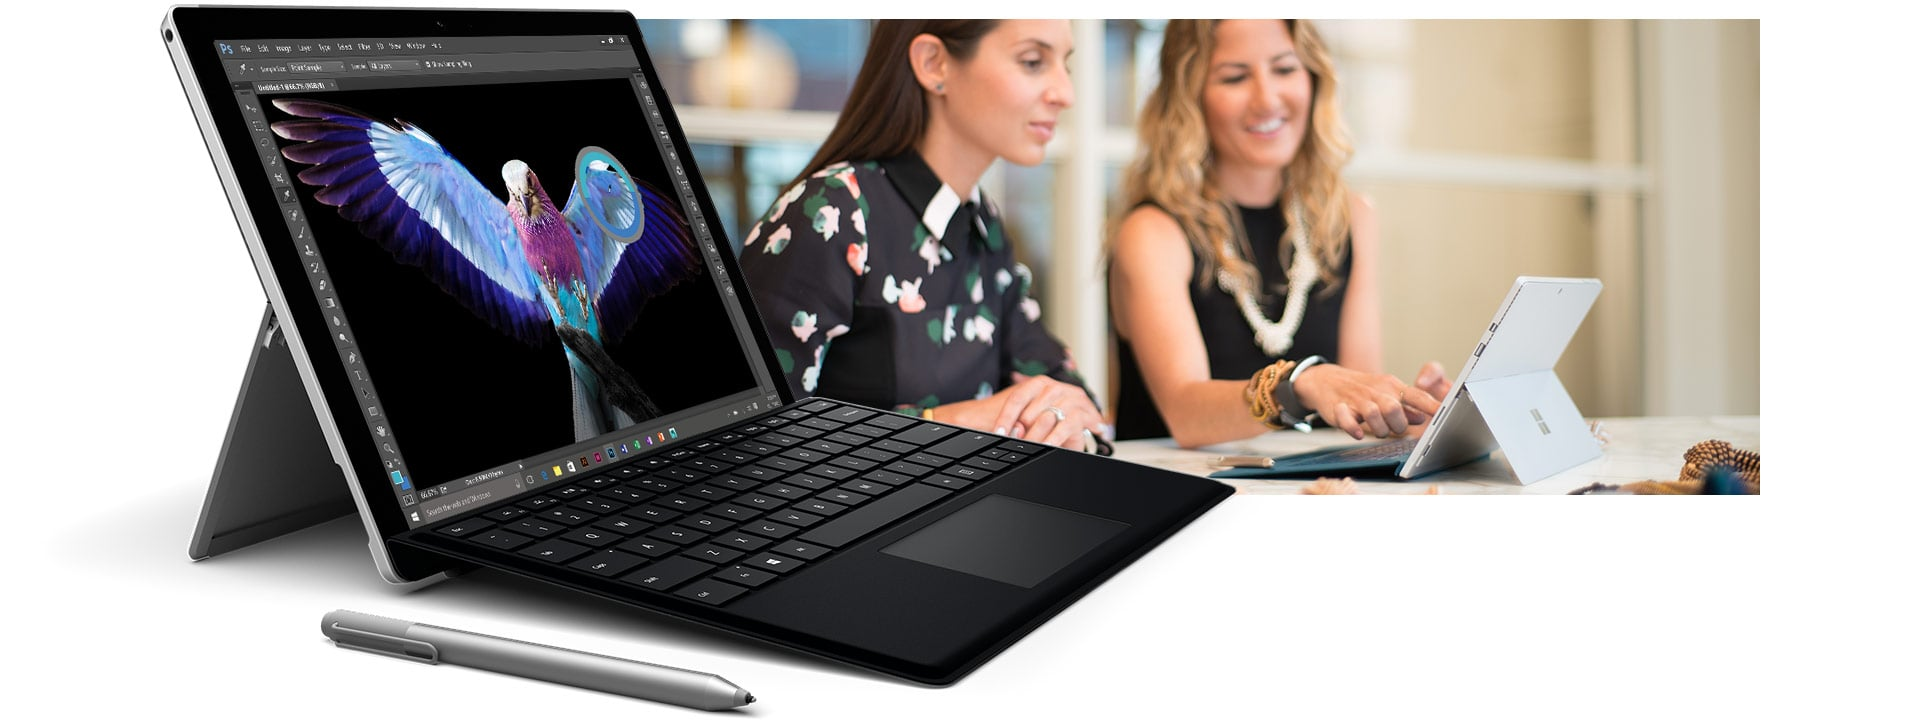 Surface Pro 4 with black keyboard open with Surface Pen next to it with an image of two women looking at a Surface Pro 4 in tablet mode behind it